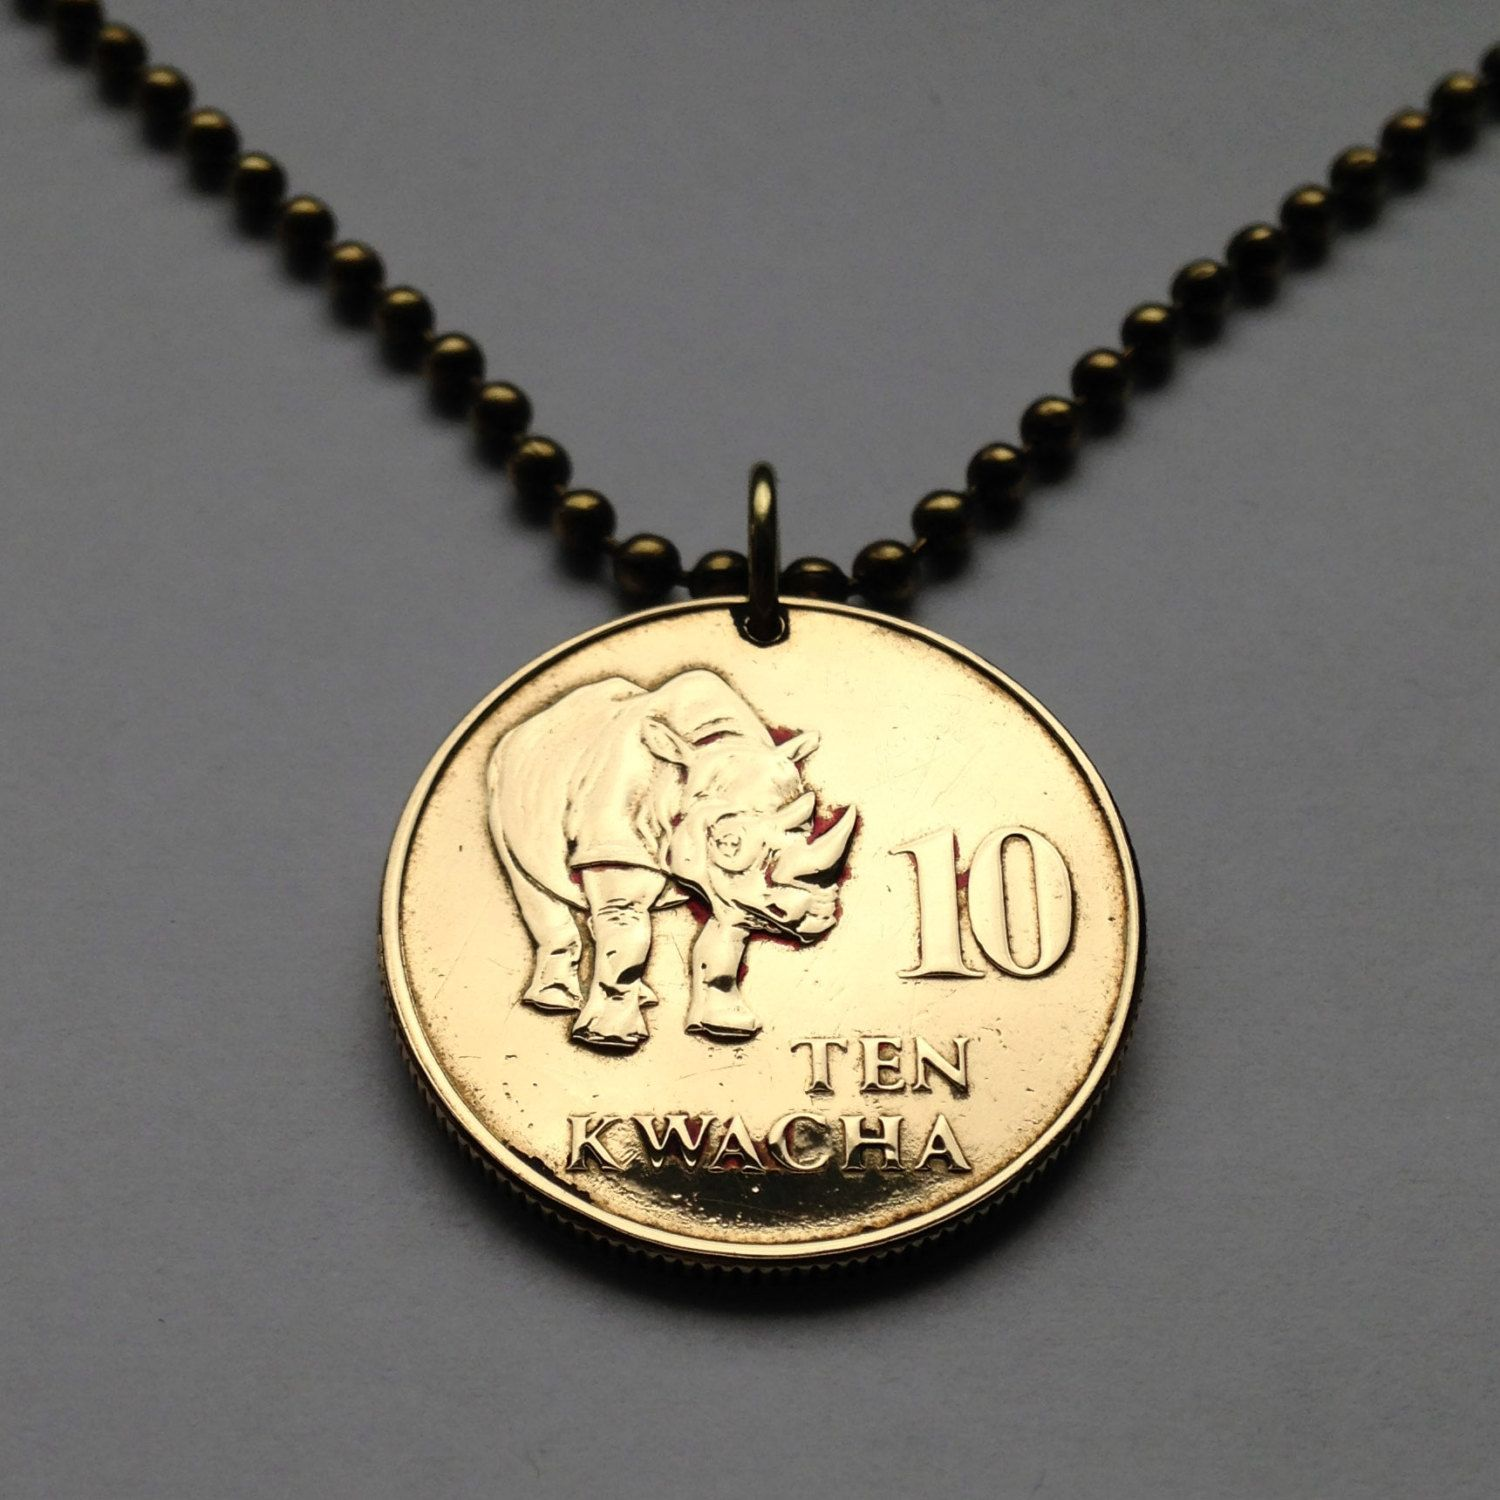 1992 Zambia 10 Kwacha Coin Pendant Necklace Charm Jewelry African Africa Animal Hippo Endangered Black Rhinoceros Rh Coin Pendant Necklace Coin Pendant Jewelry